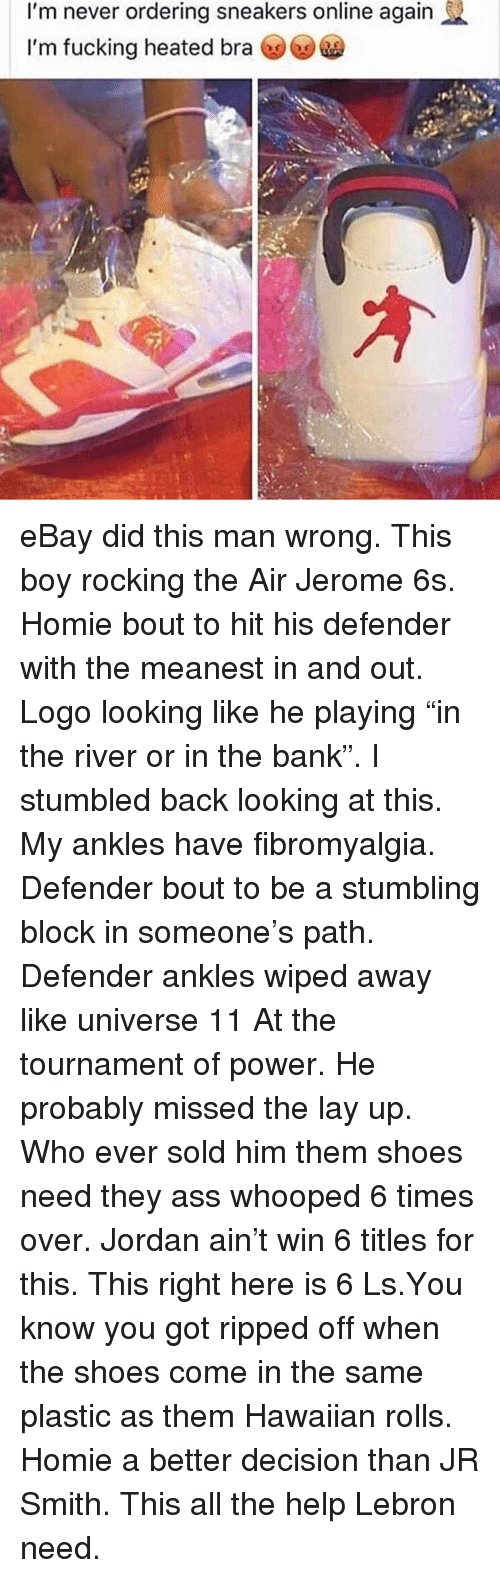 "Lay Up: I'm never ordering sneakers online again  I'm fucking heated bra eBay did this man wrong. This boy rocking the Air Jerome 6s. Homie bout to hit his defender with the meanest in and out. Logo looking like he playing ""in the river or in the bank"". I stumbled back looking at this. My ankles have fibromyalgia. Defender bout to be a stumbling block in someone's path. Defender ankles wiped away like universe 11 At the tournament of power. He probably missed the lay up. Who ever sold him them shoes need they ass whooped 6 times over. Jordan ain't win 6 titles for this. This right here is 6 Ls.You know you got ripped off when the shoes come in the same plastic as them Hawaiian rolls. Homie a better decision than JR Smith. This all the help Lebron need."